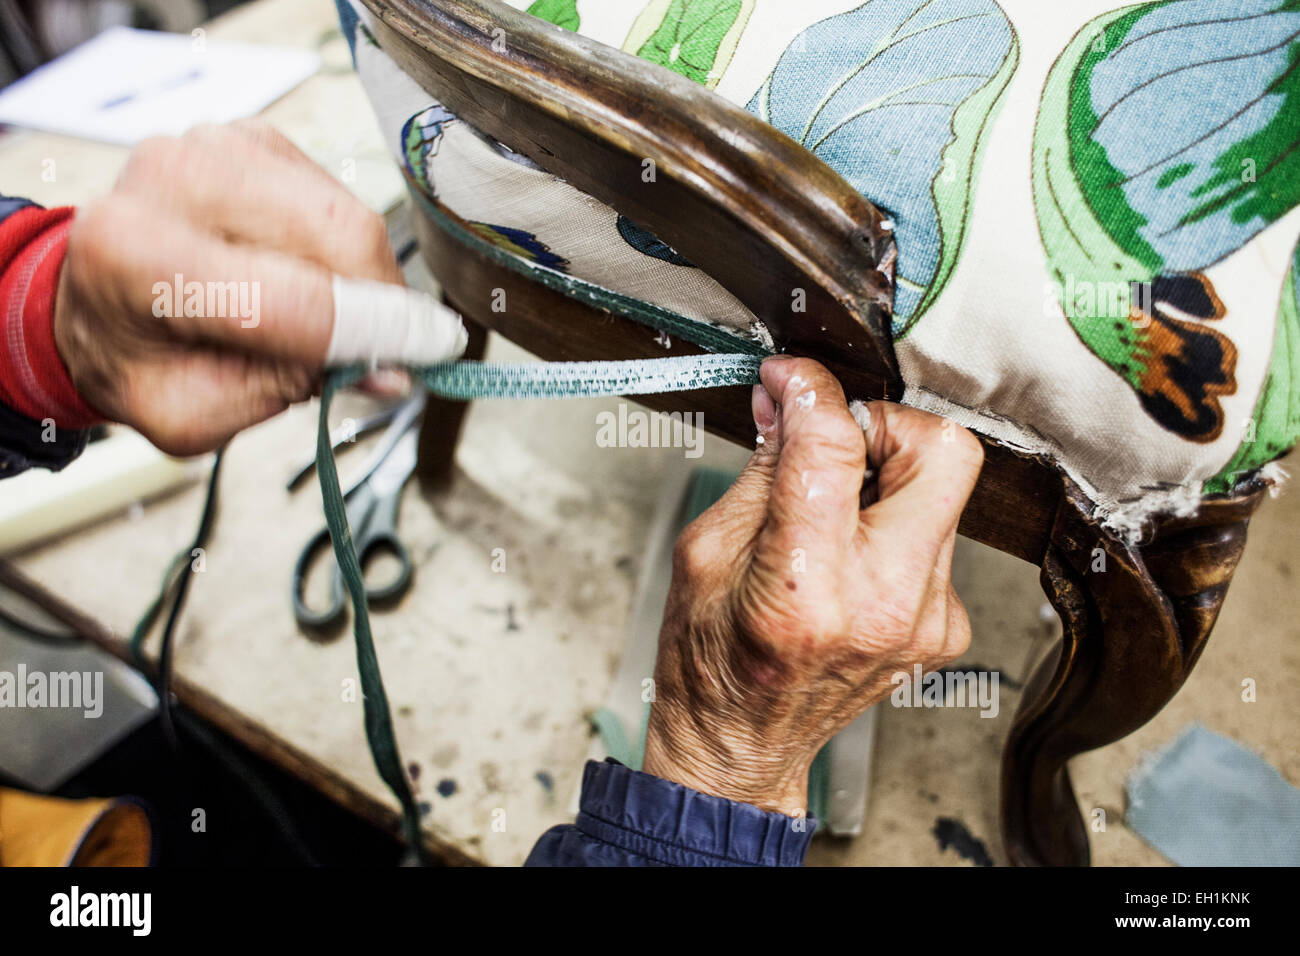 Cropped image of worker's hands making chair in workshop - Stock Image